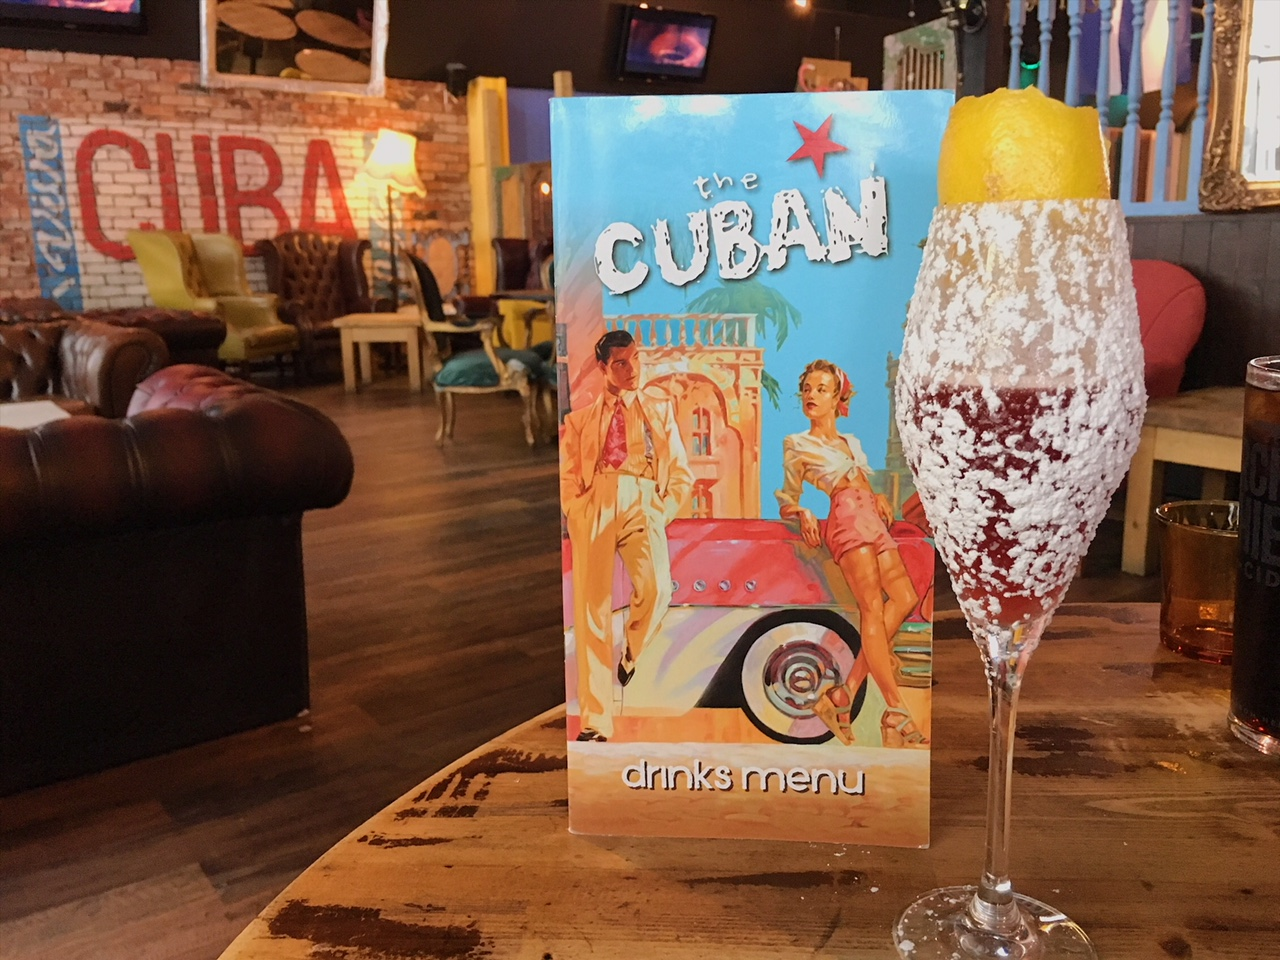 The signature cocktail 'Last Day in Cuba' at The Cuban restaurant, Bristol - the glass is covered in icing sugar.